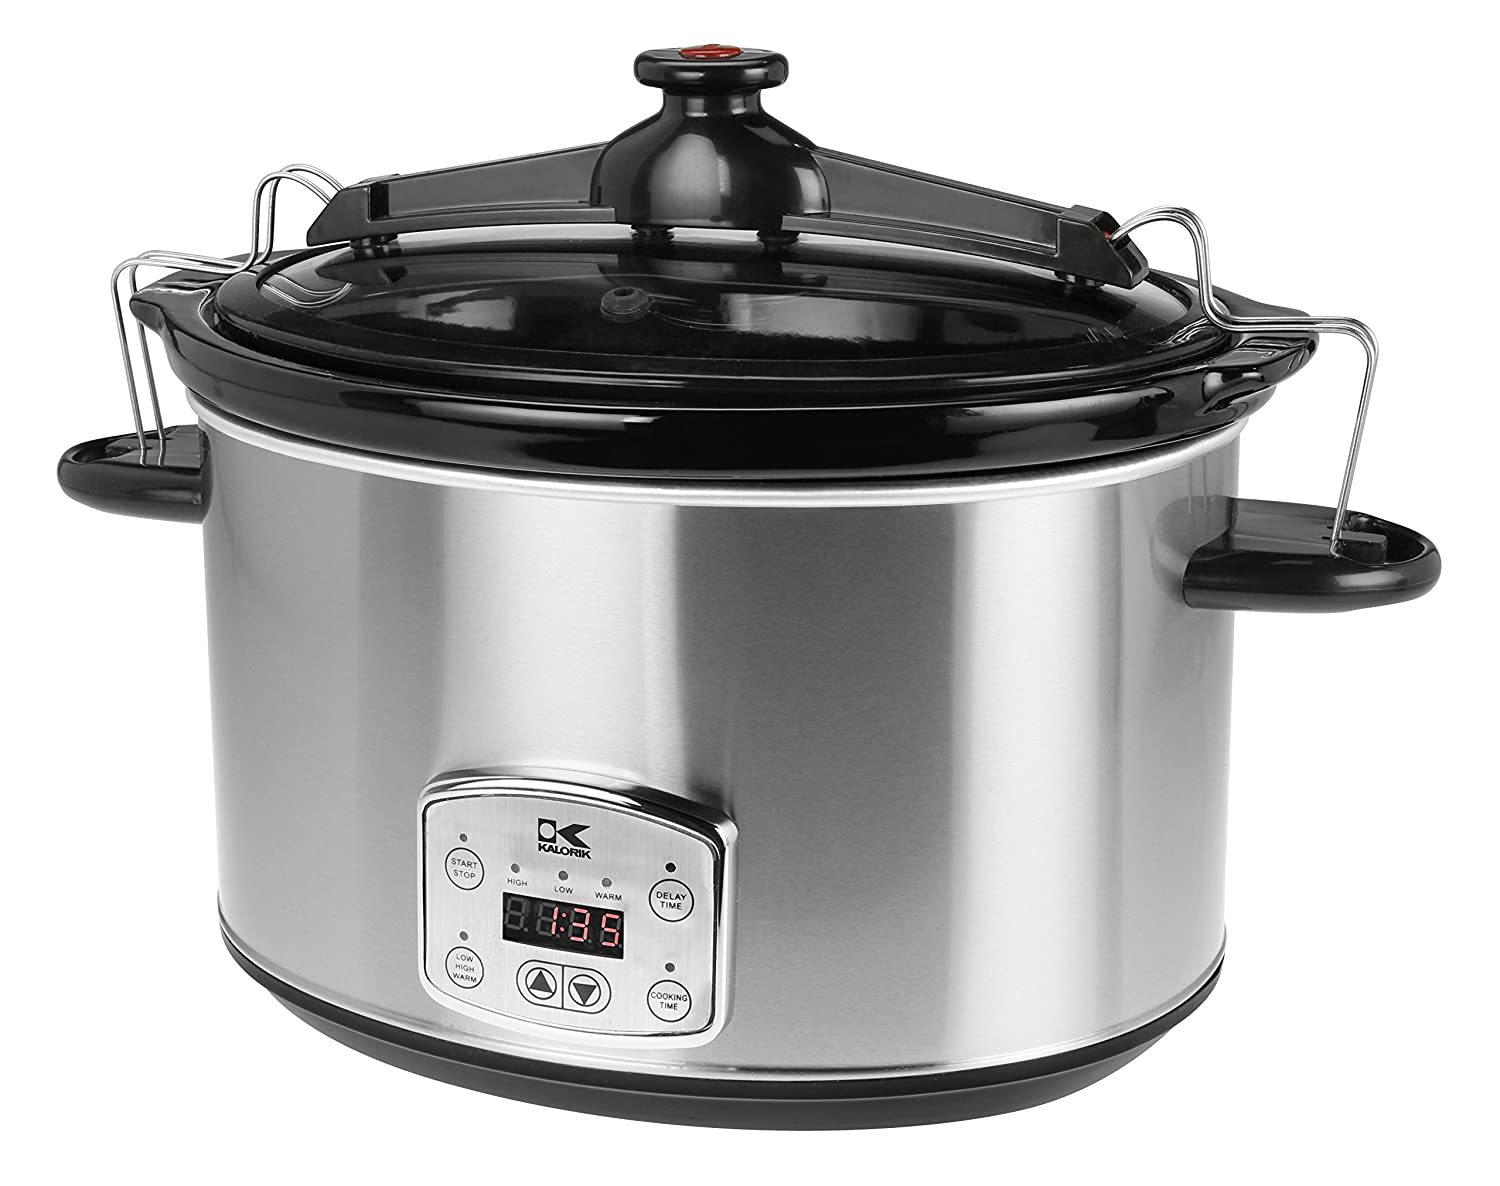 Amazon Kalorik 8 Quart Slow Cooker Digital Programmable Oval Cook And Carry Stainless Steel Kitchen Dining